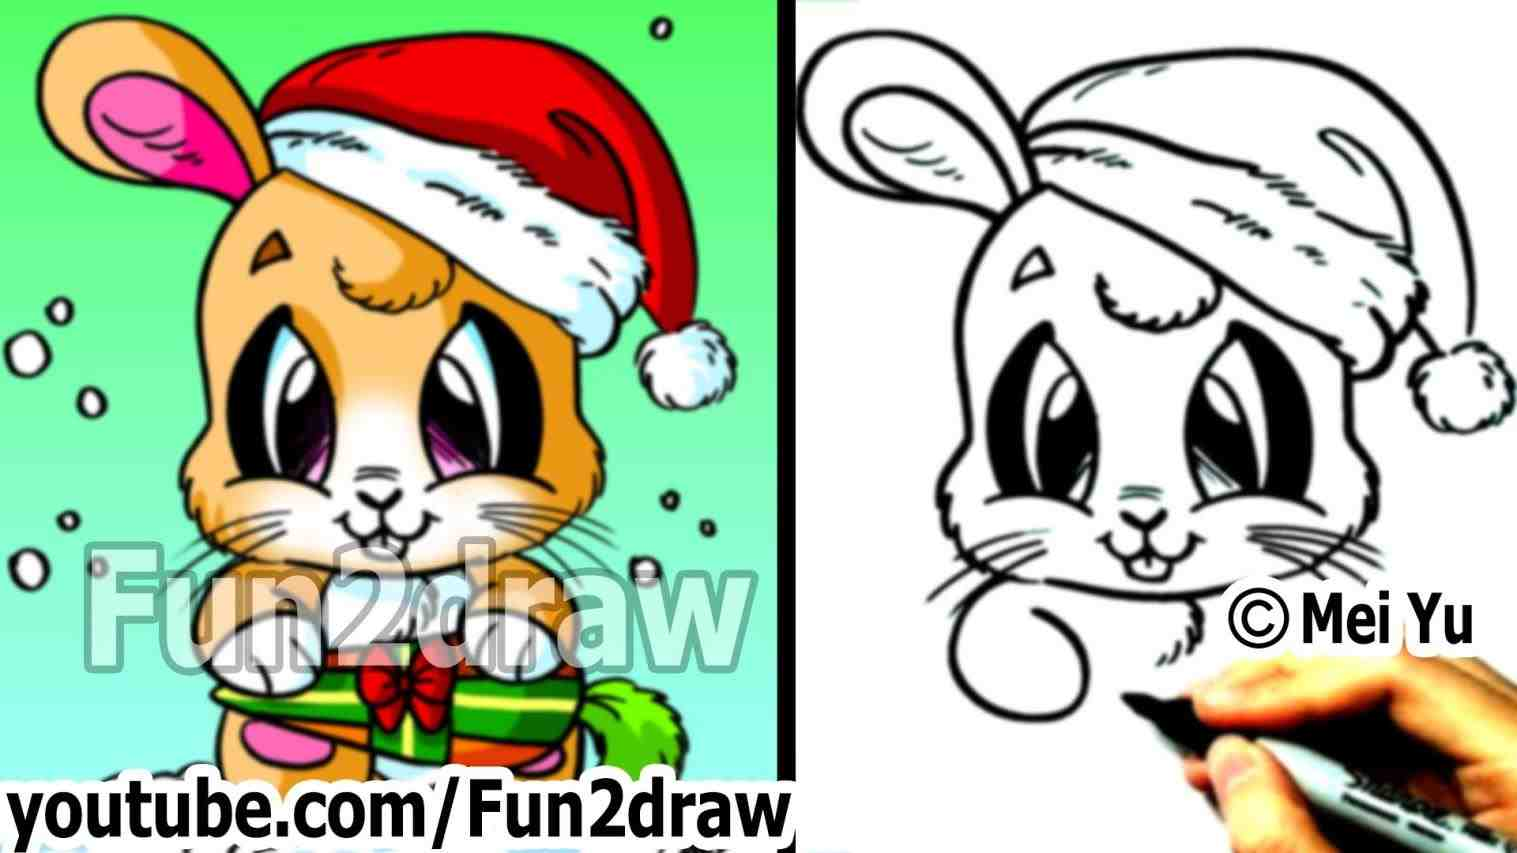 1517x853 Anime Christmas Cat Drawings Cheminee.website